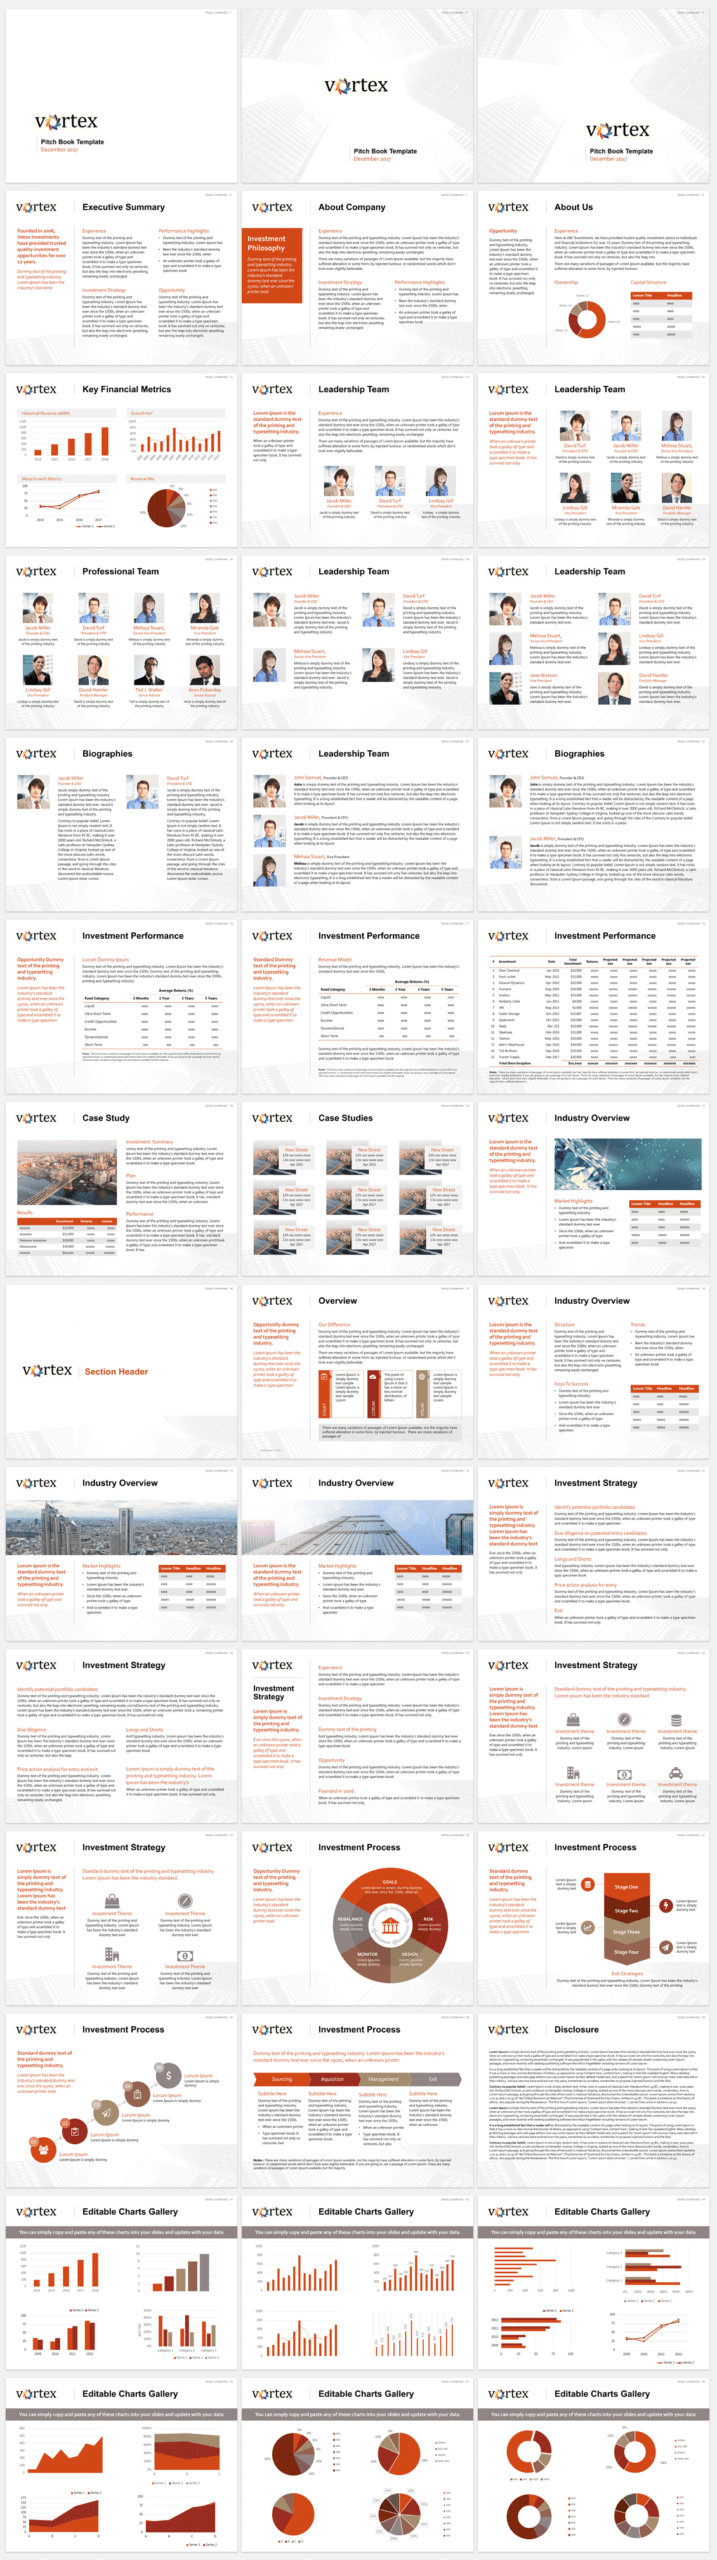 Pitch Book Template Example For Investment Banking Pitch In Powerpoint Pitch Book Template